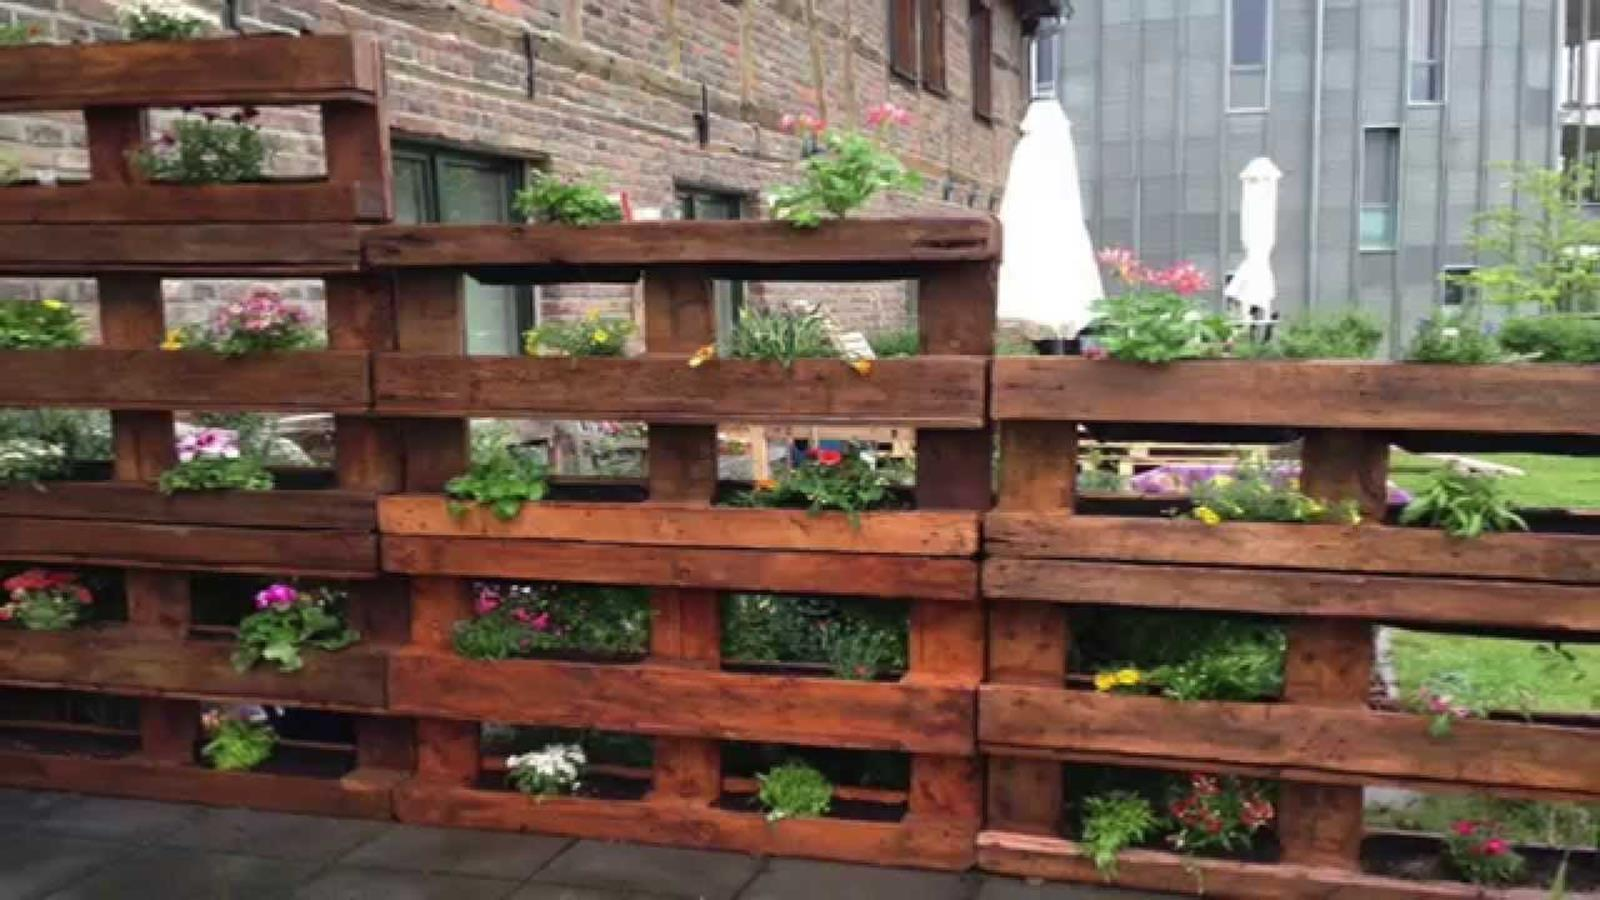 Upcycled Wood Pallet Gardens 6